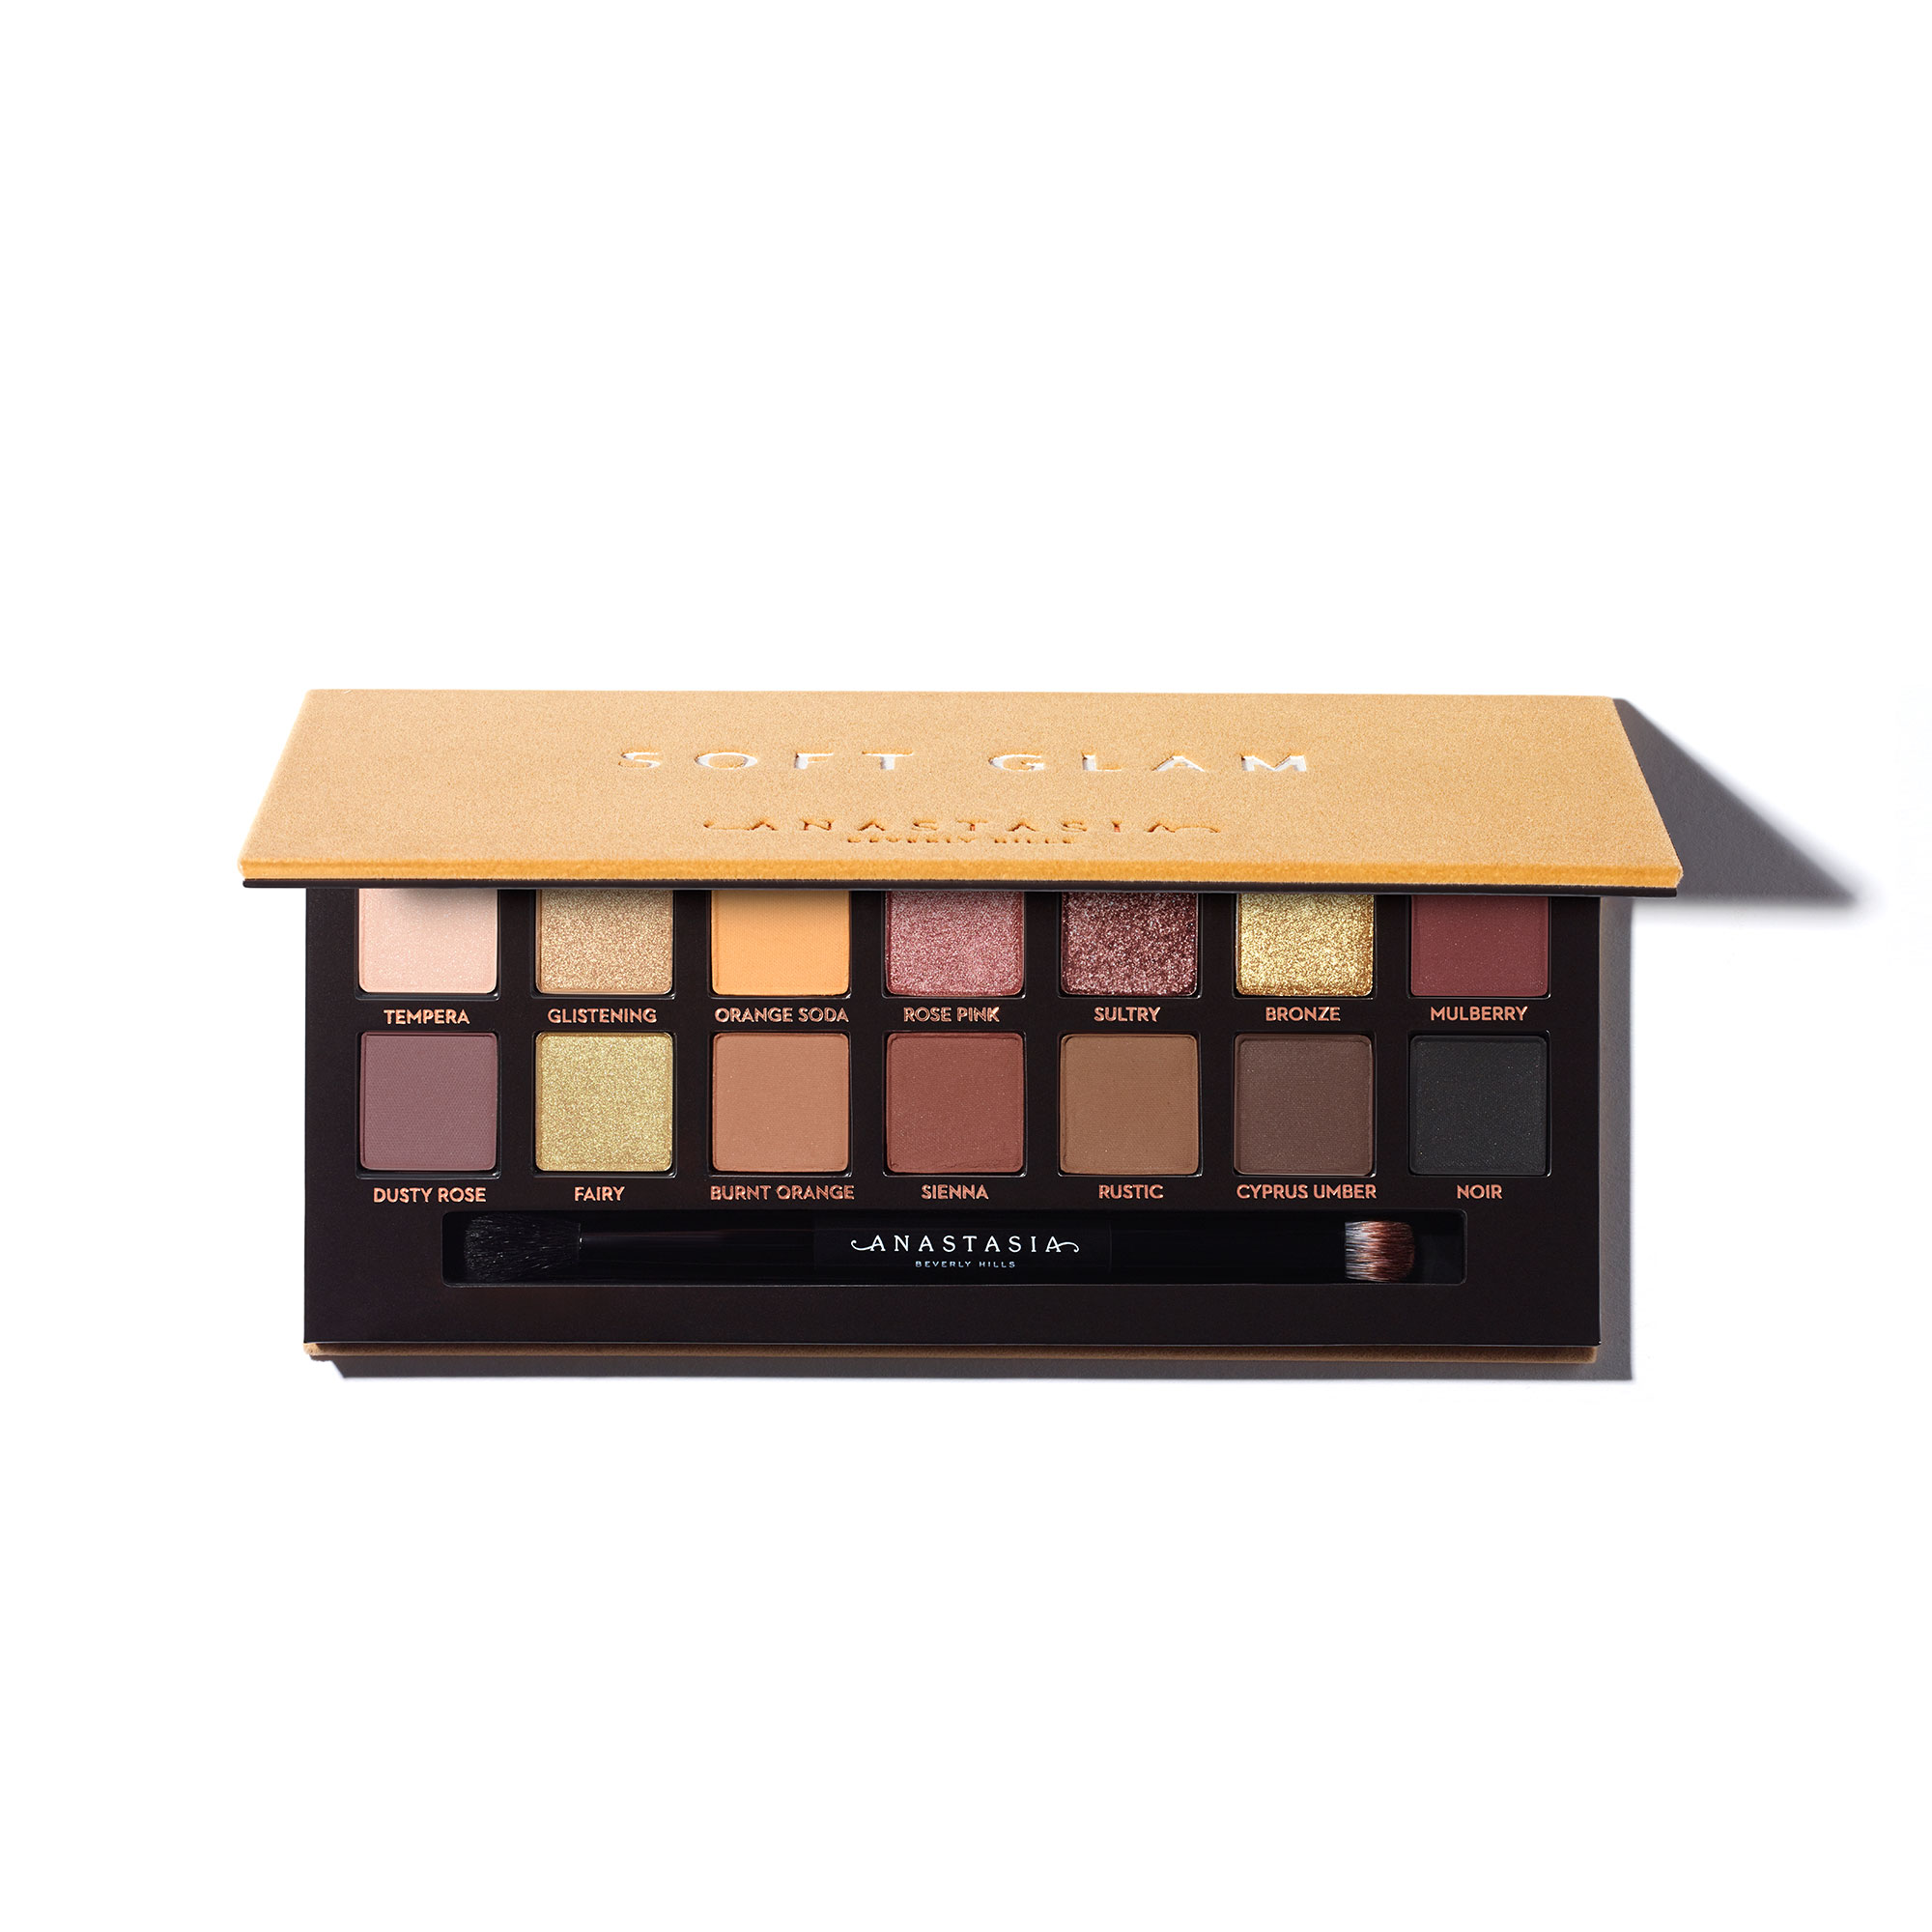 Anastasia soft glam eyeshadow palette $42.00 This palette is amazing for all girls. Just make sure she doesn't already have it cause it is a very popular palette. Hang out with her while she's getting ready to go out and try to be sneaky and see if she uses it is by best advice haha. If your girl straight up hates makeup and only wears like concealer then don't get this for her but chances are if you see her wearing makeup she will like this palette!   https://www.sephora.com/product/soft-glam-eyeshadow-palette-P58930227